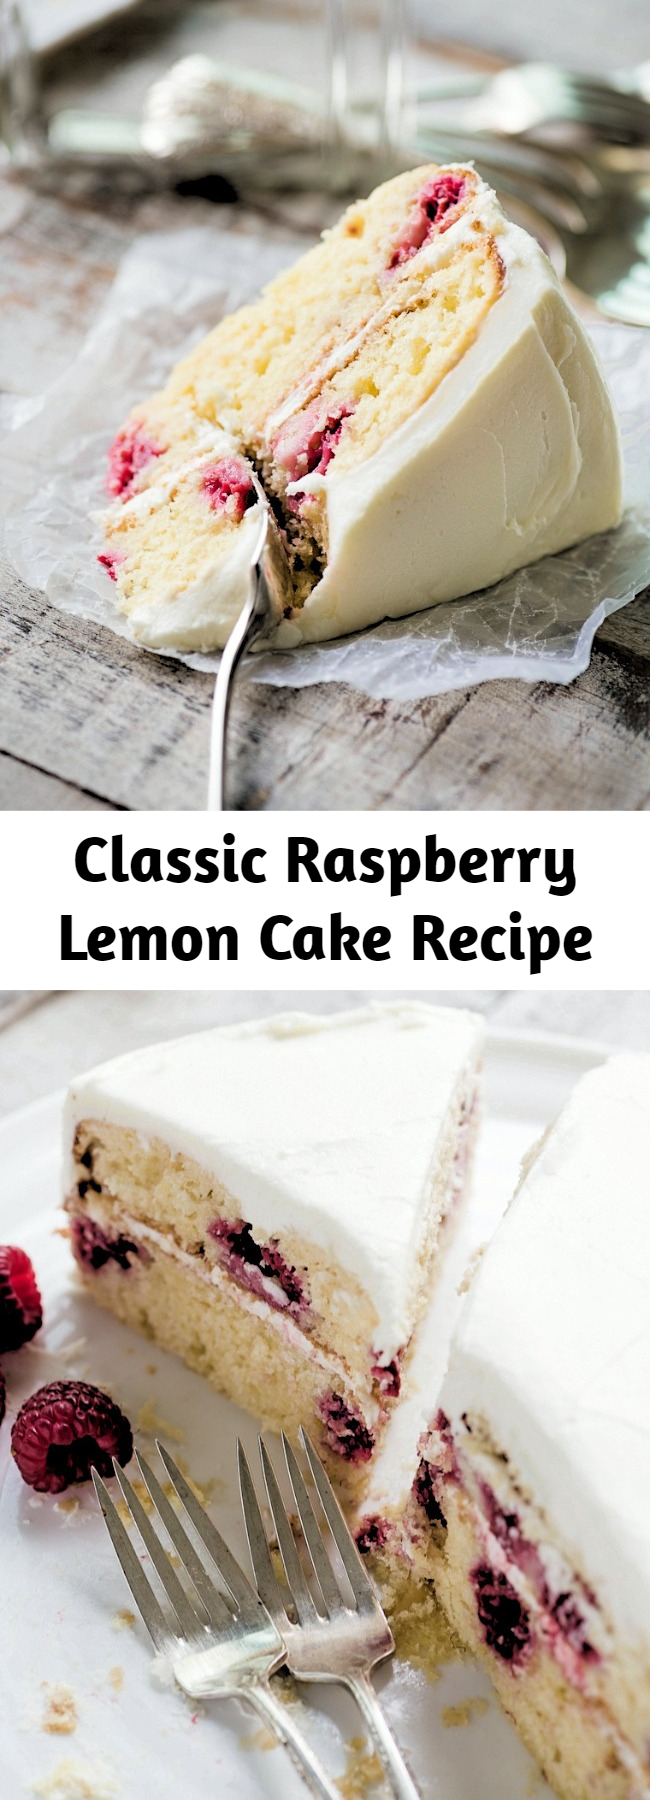 Classic Raspberry Lemon Cake Recipe